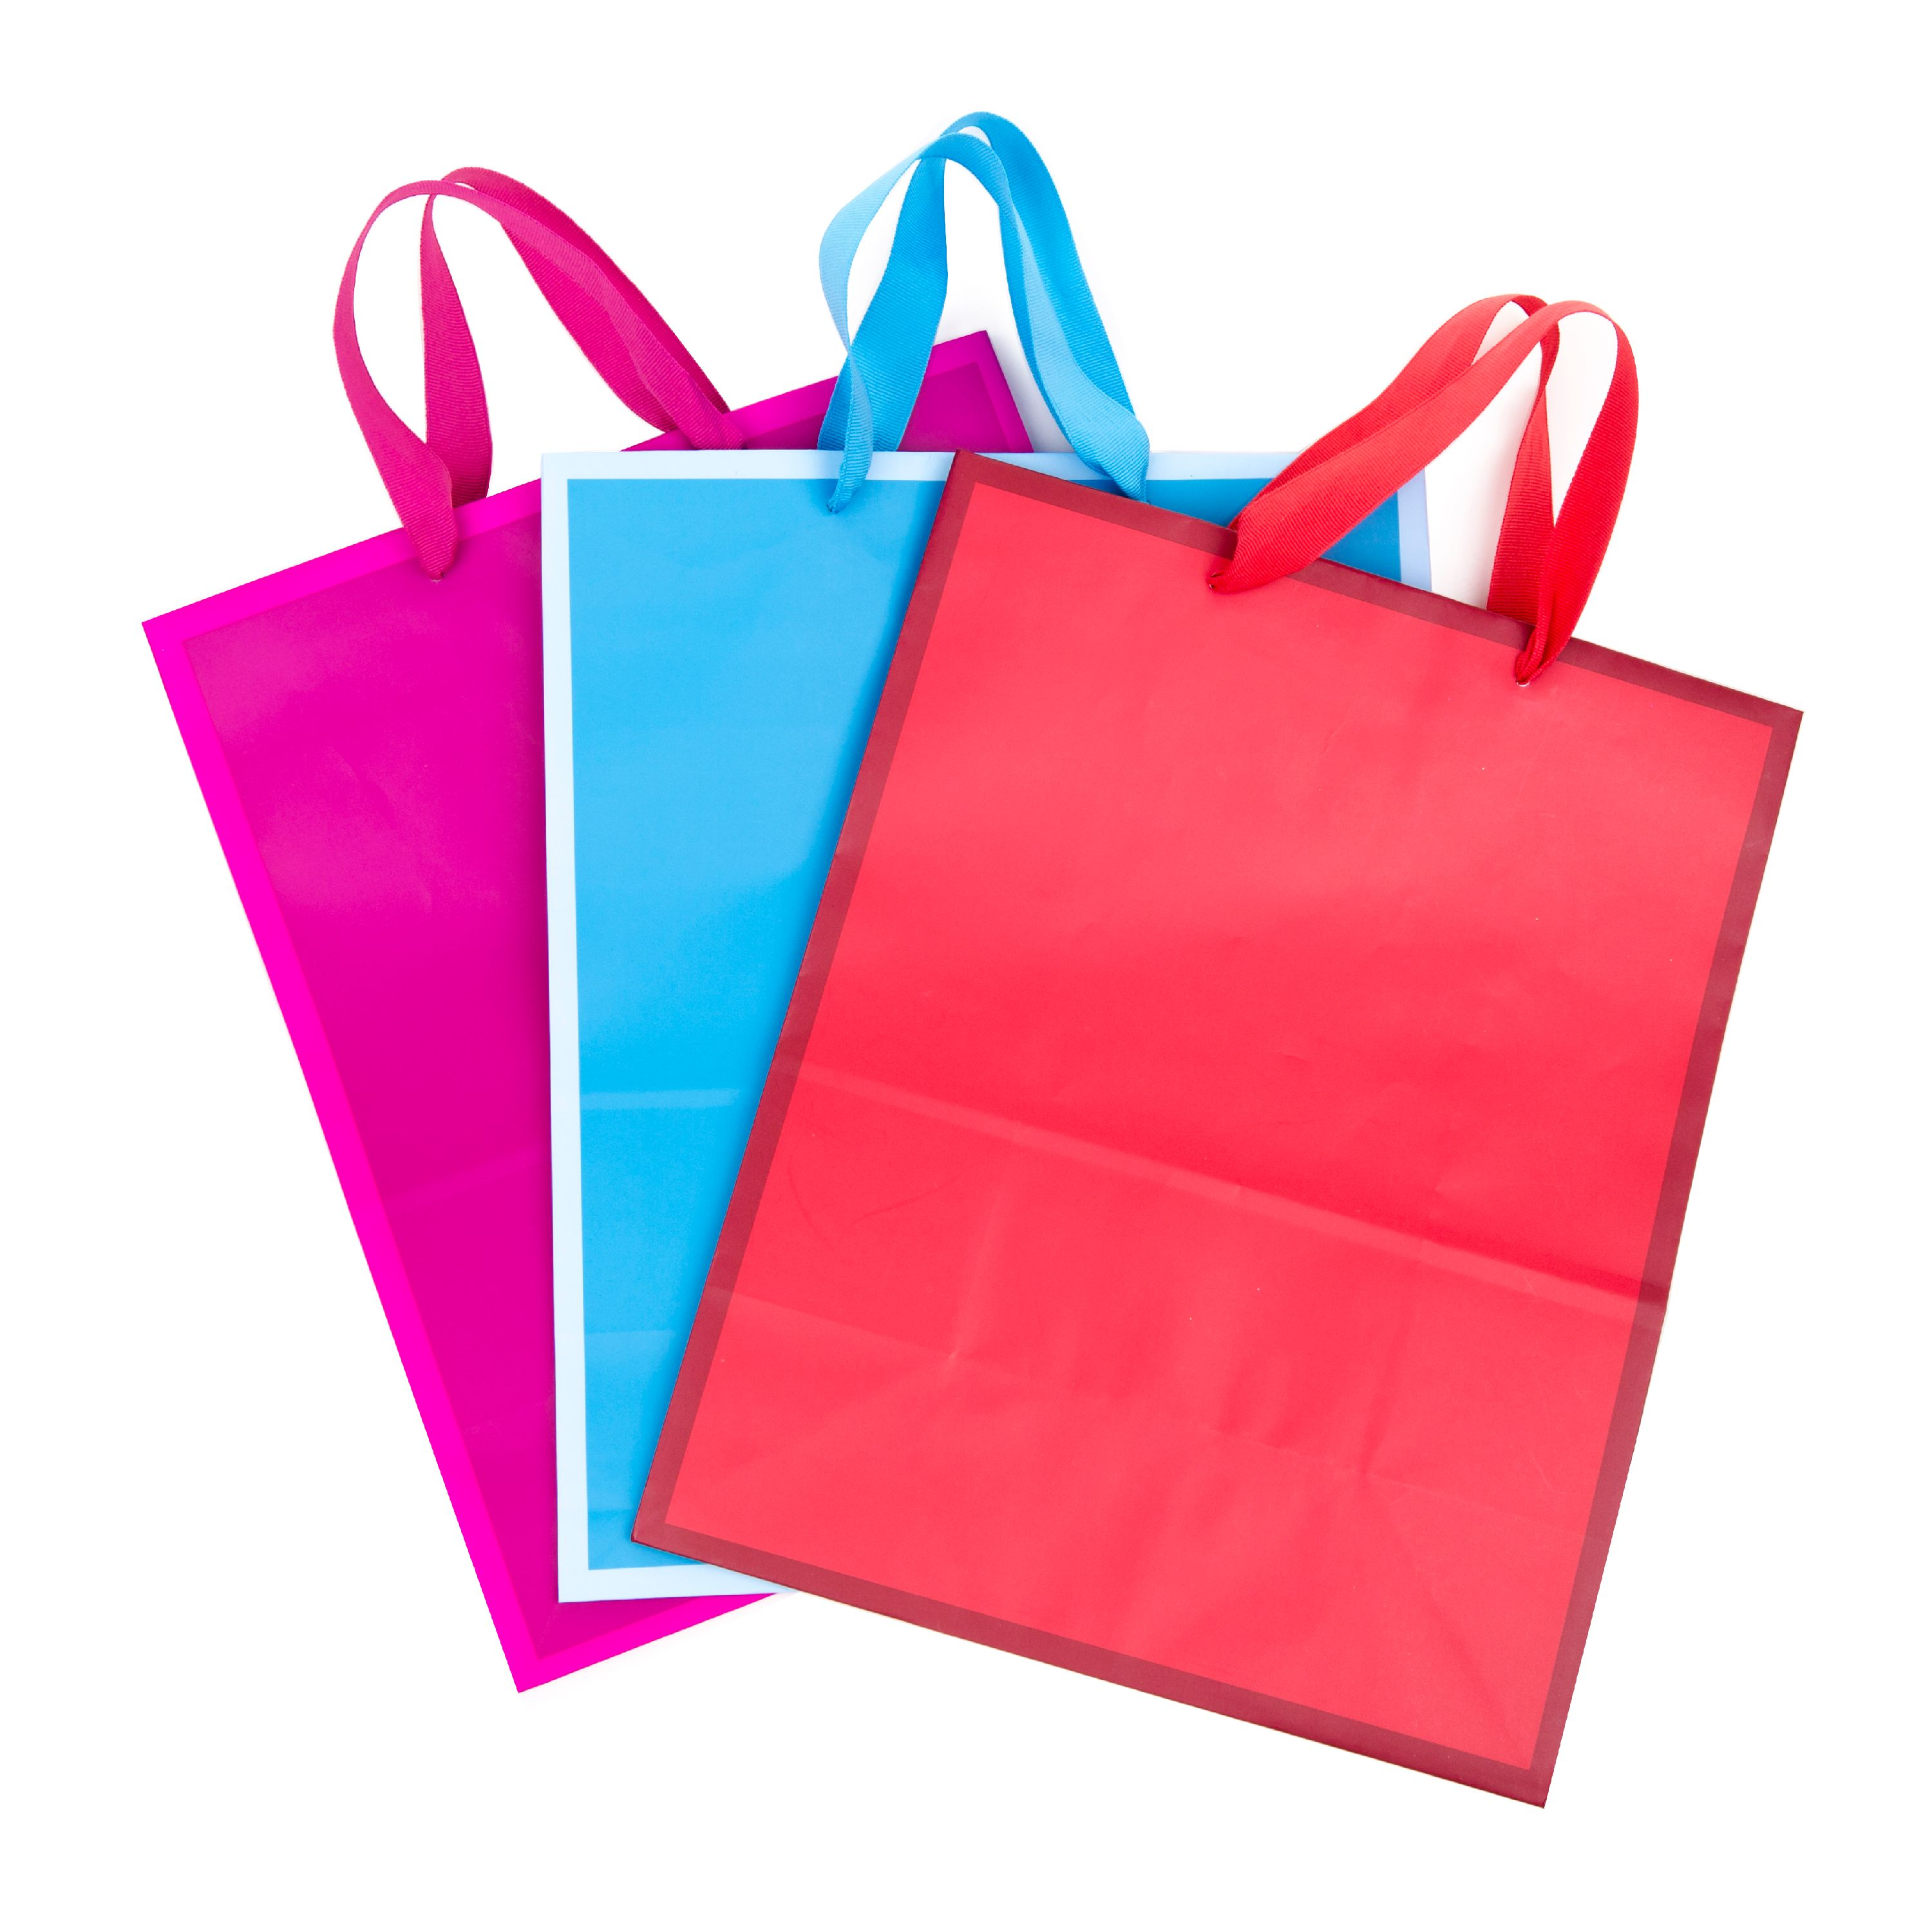 Hallmark, Solid Color, Large Gift Bags, 3 Pack